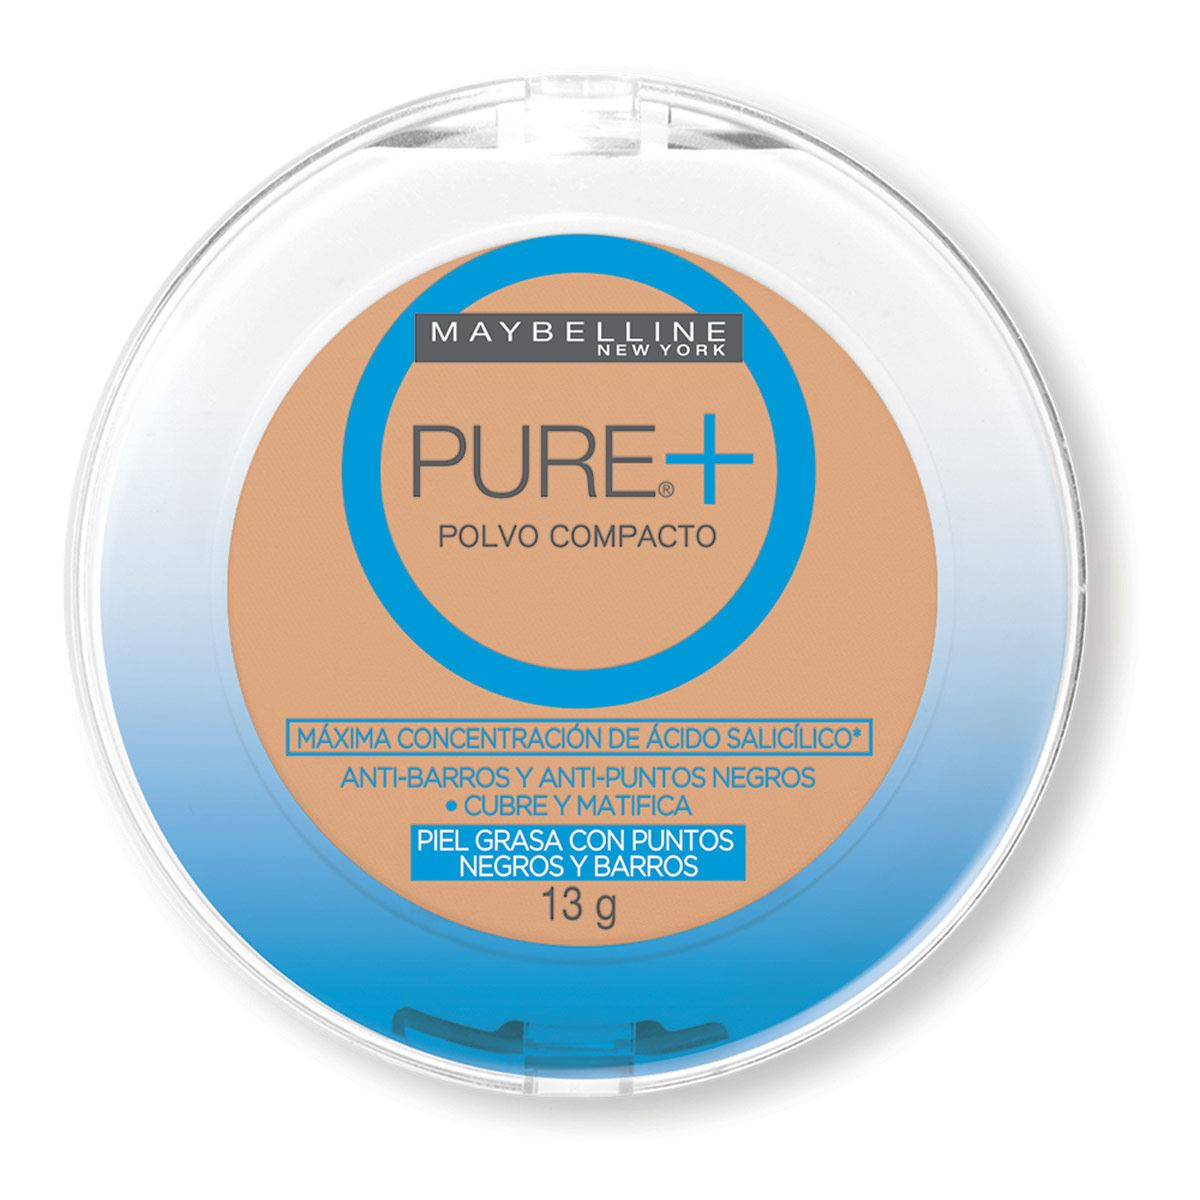 Maquillaje en Polvo Maybelline Pure Plus Arena Natural